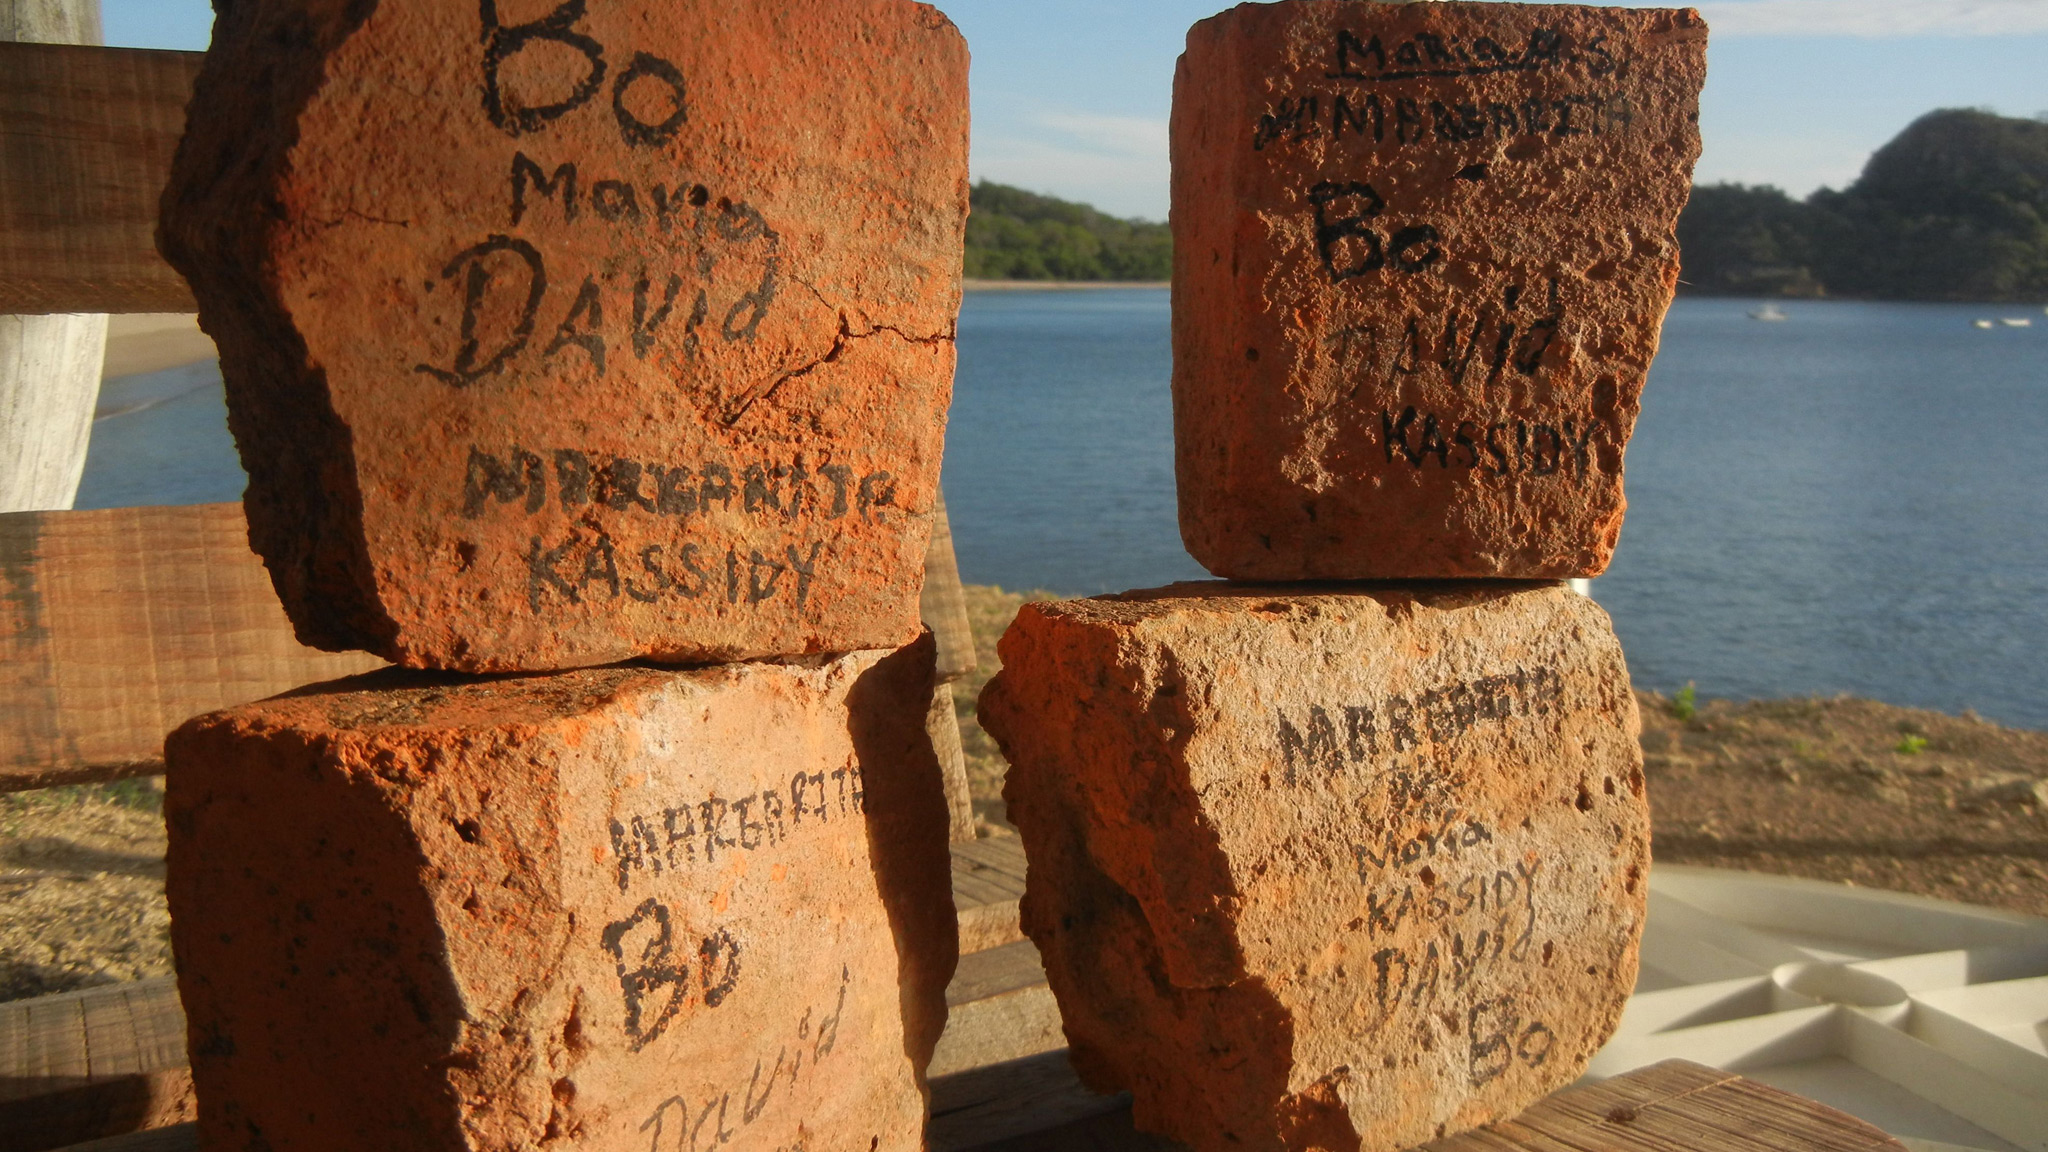 The first bricks of the community health center to be built in Gigante, Nicaragua, signed by the Gigante Health Committee.